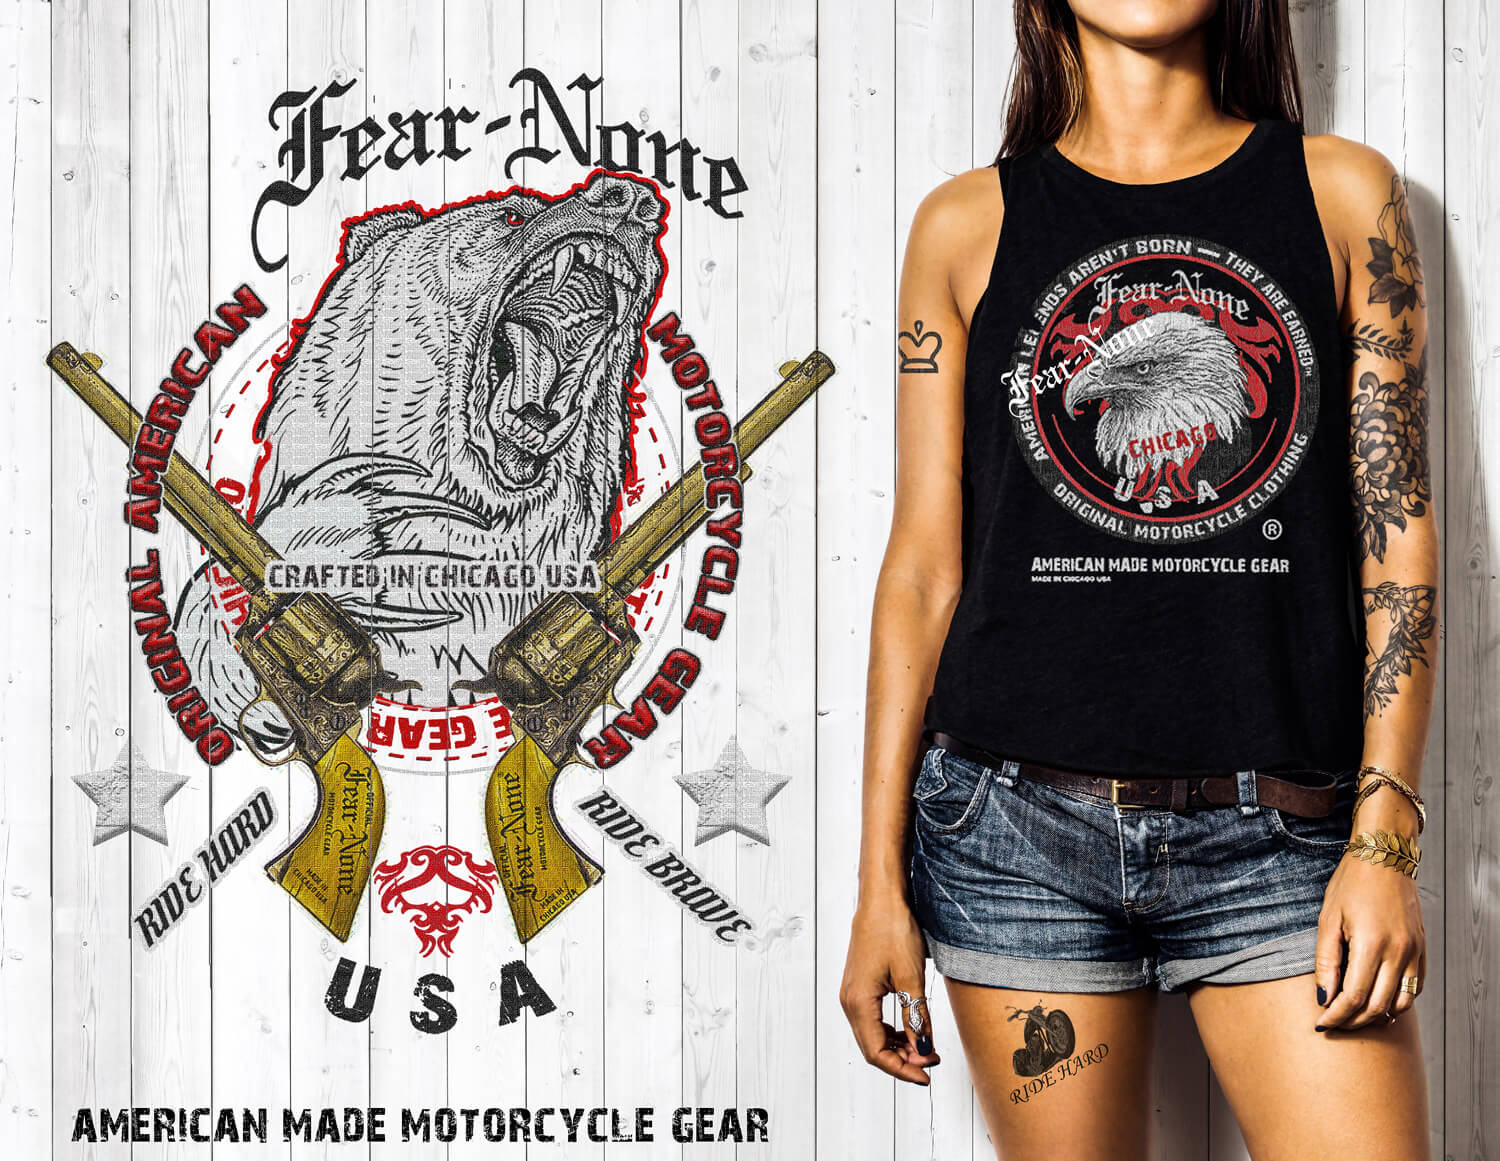 fear-none biker and motorcycle gear and clothing